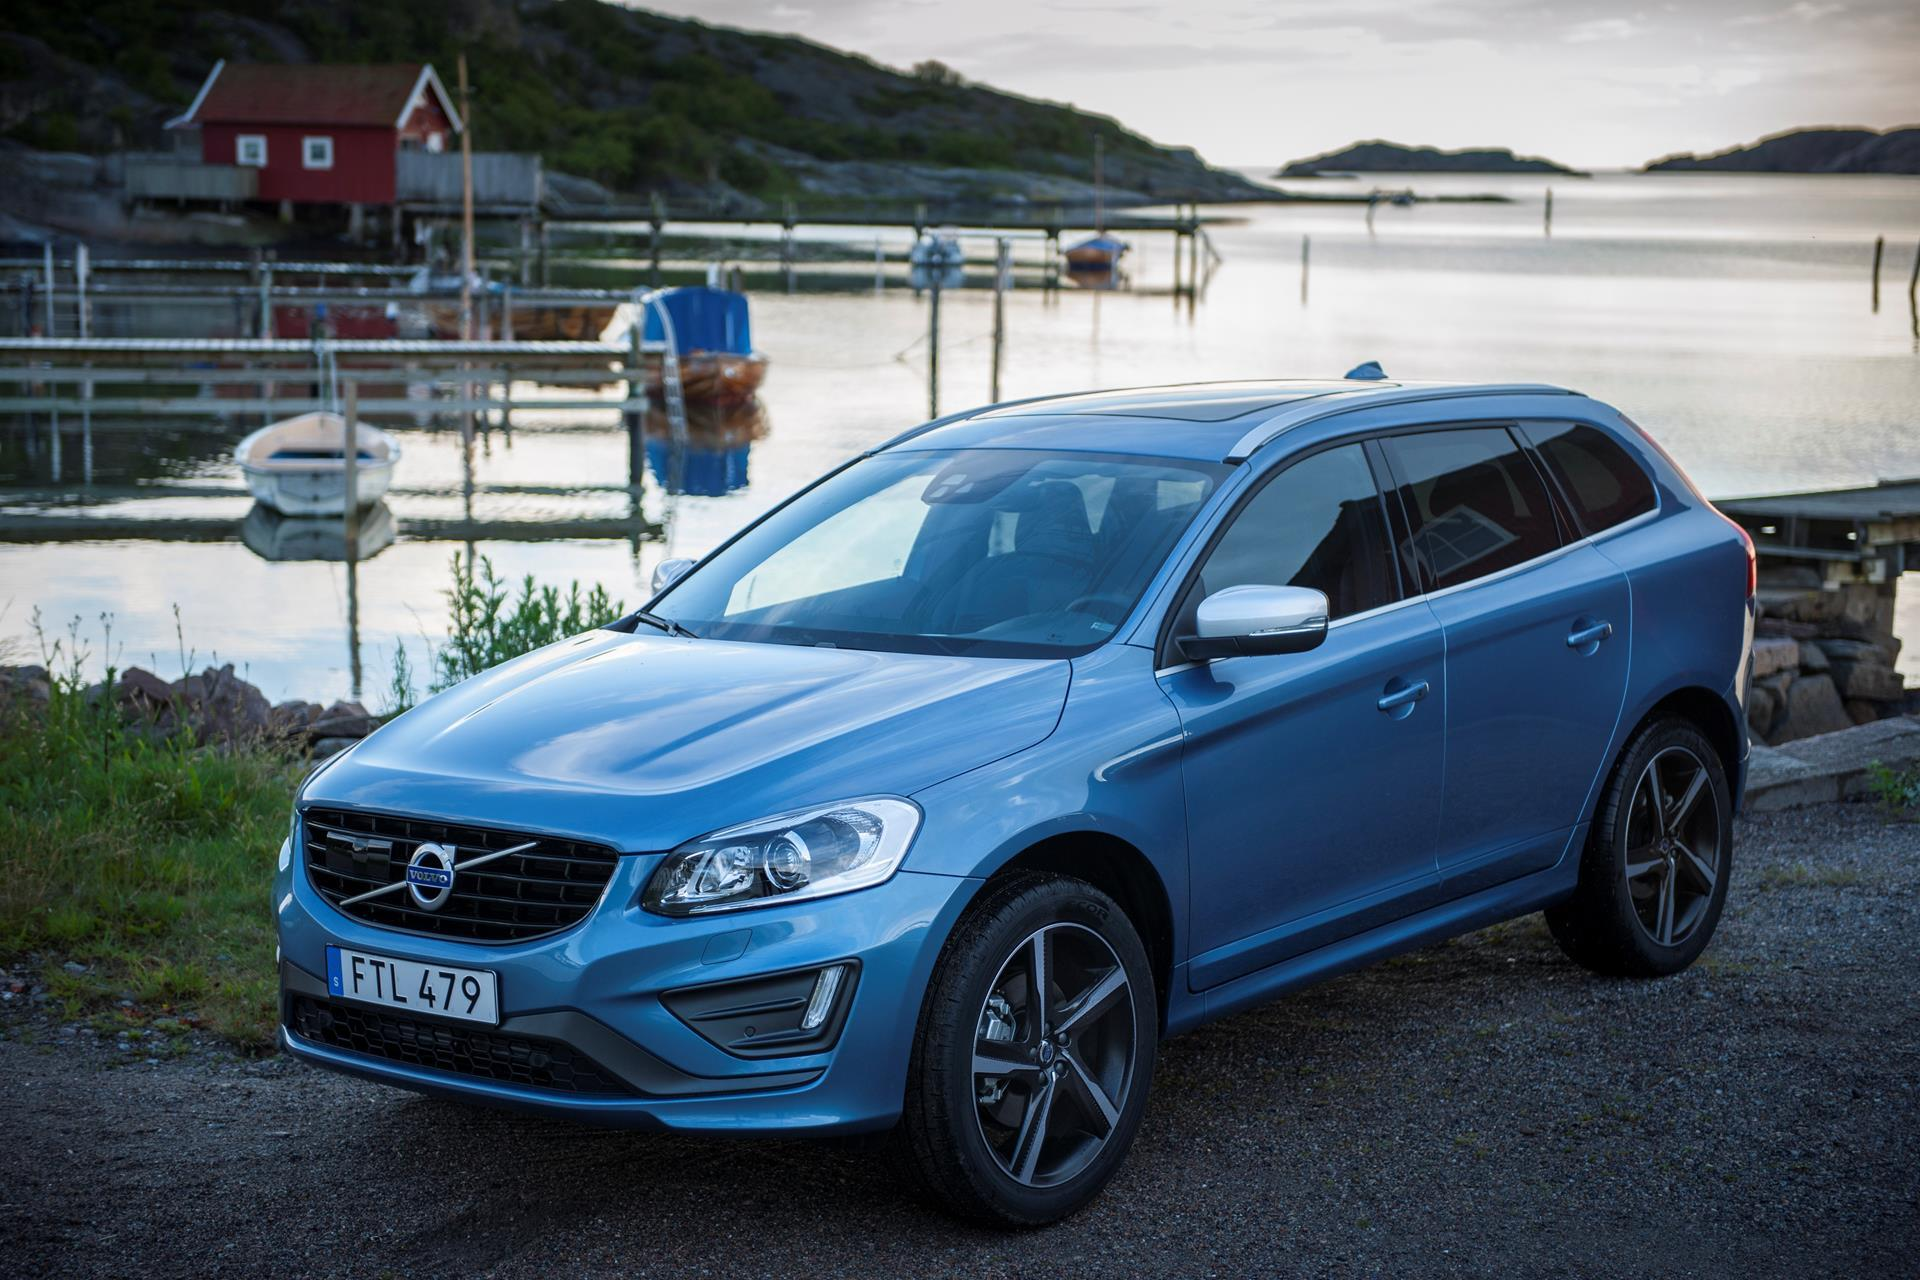 2017 volvo xc60 technical specifications and data engine dimensions and mechanical details. Black Bedroom Furniture Sets. Home Design Ideas